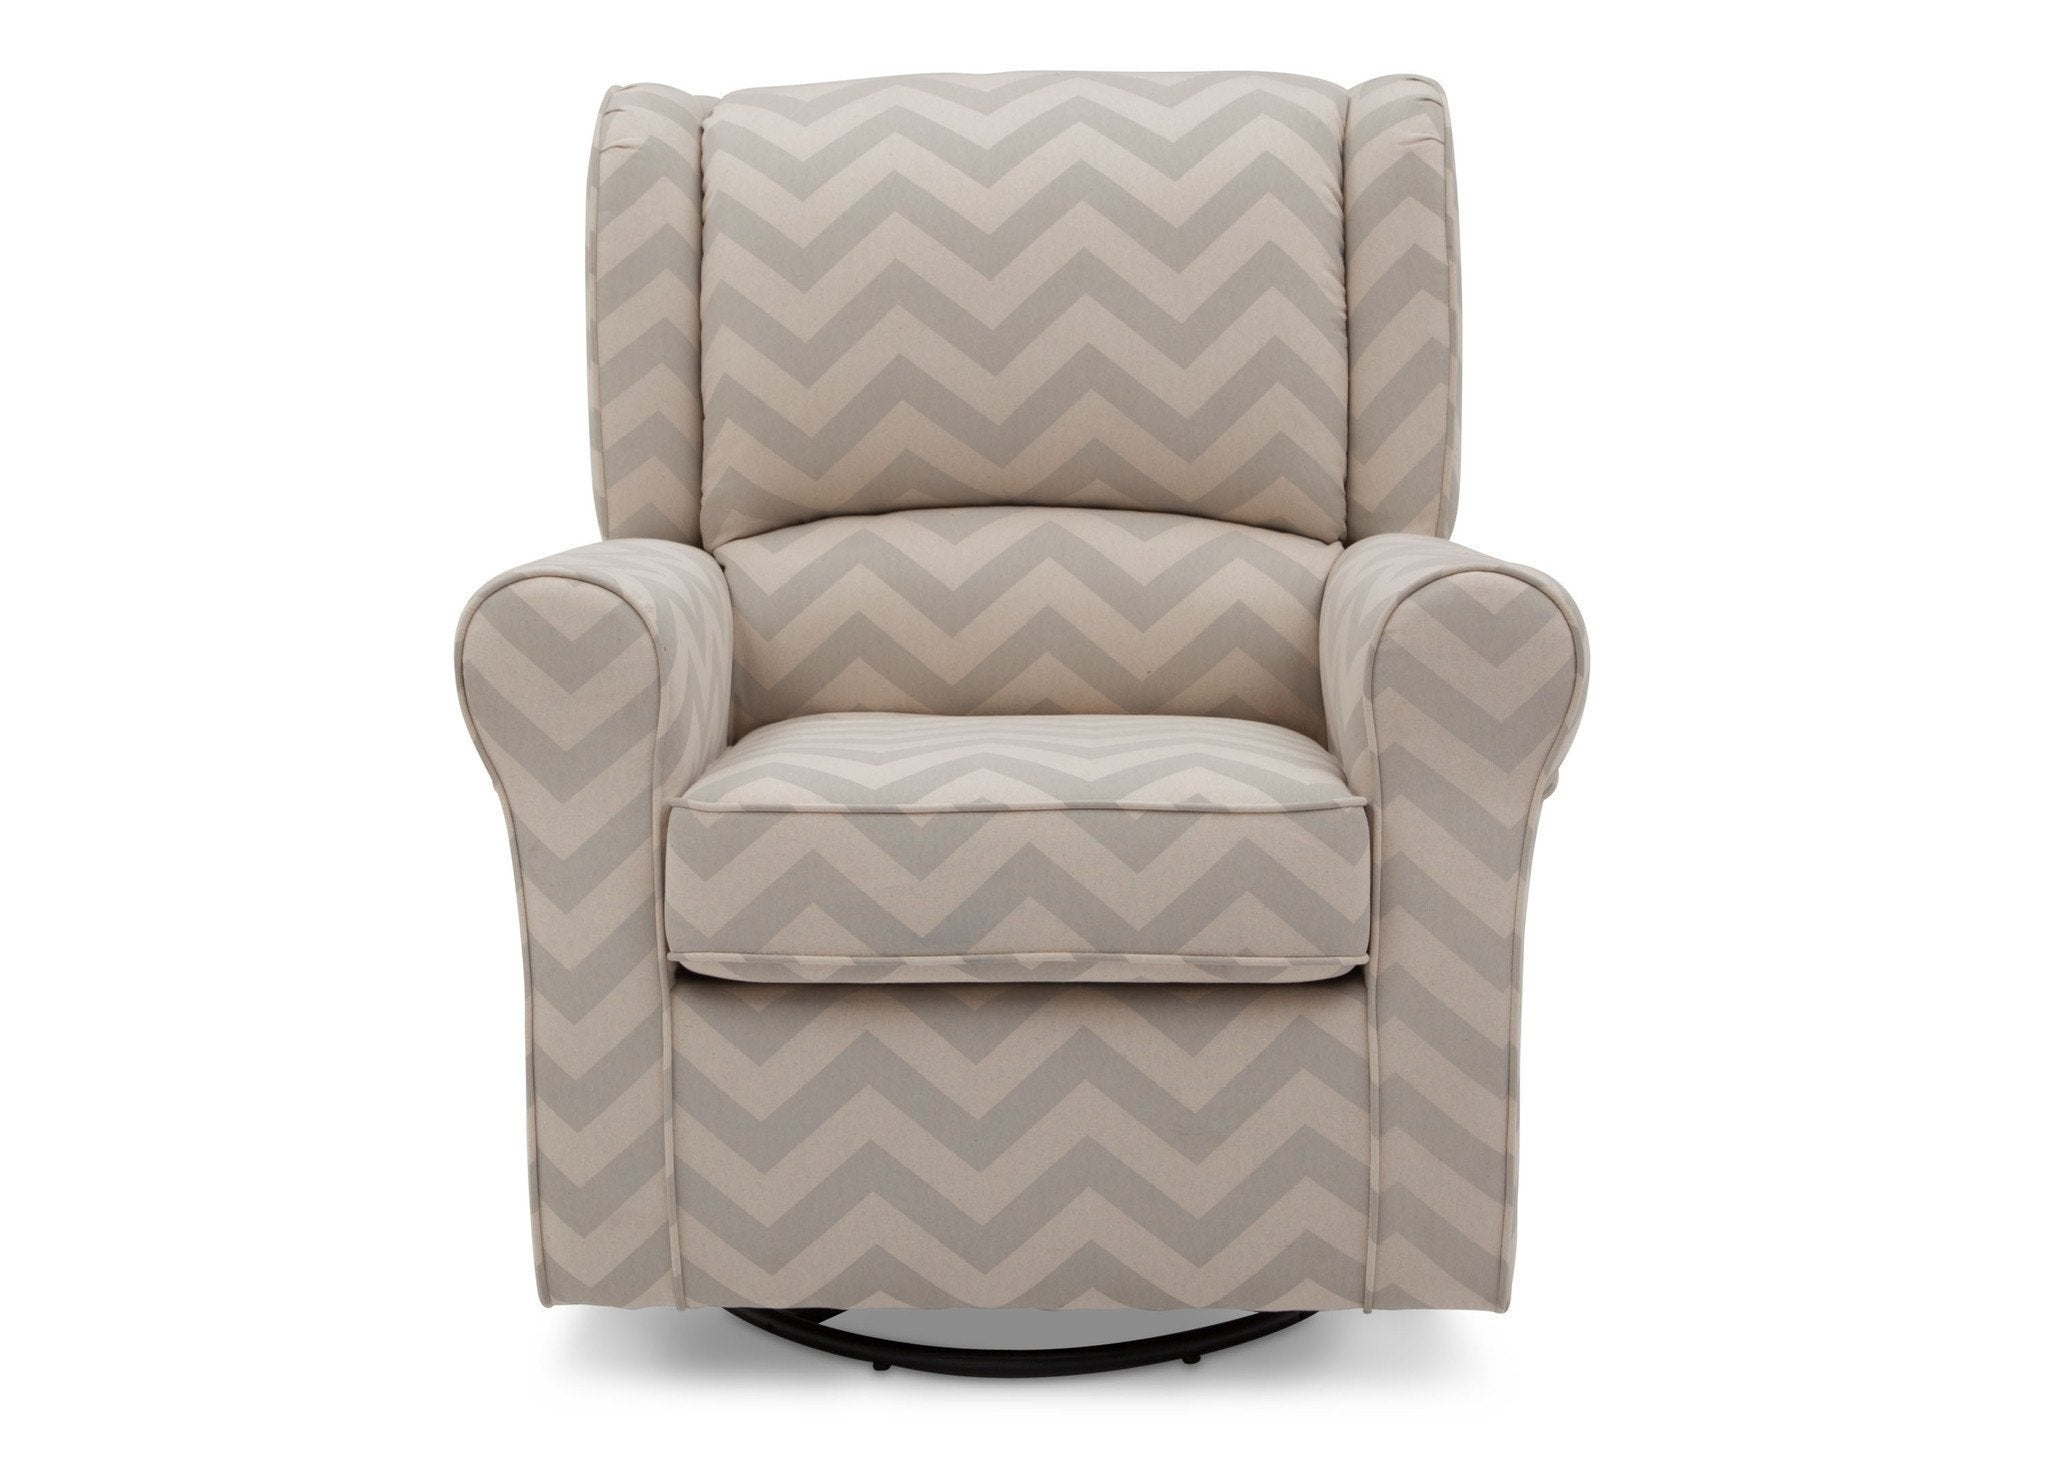 Delta Children Morgan Grey Chevron (900) Glider Front View a2a